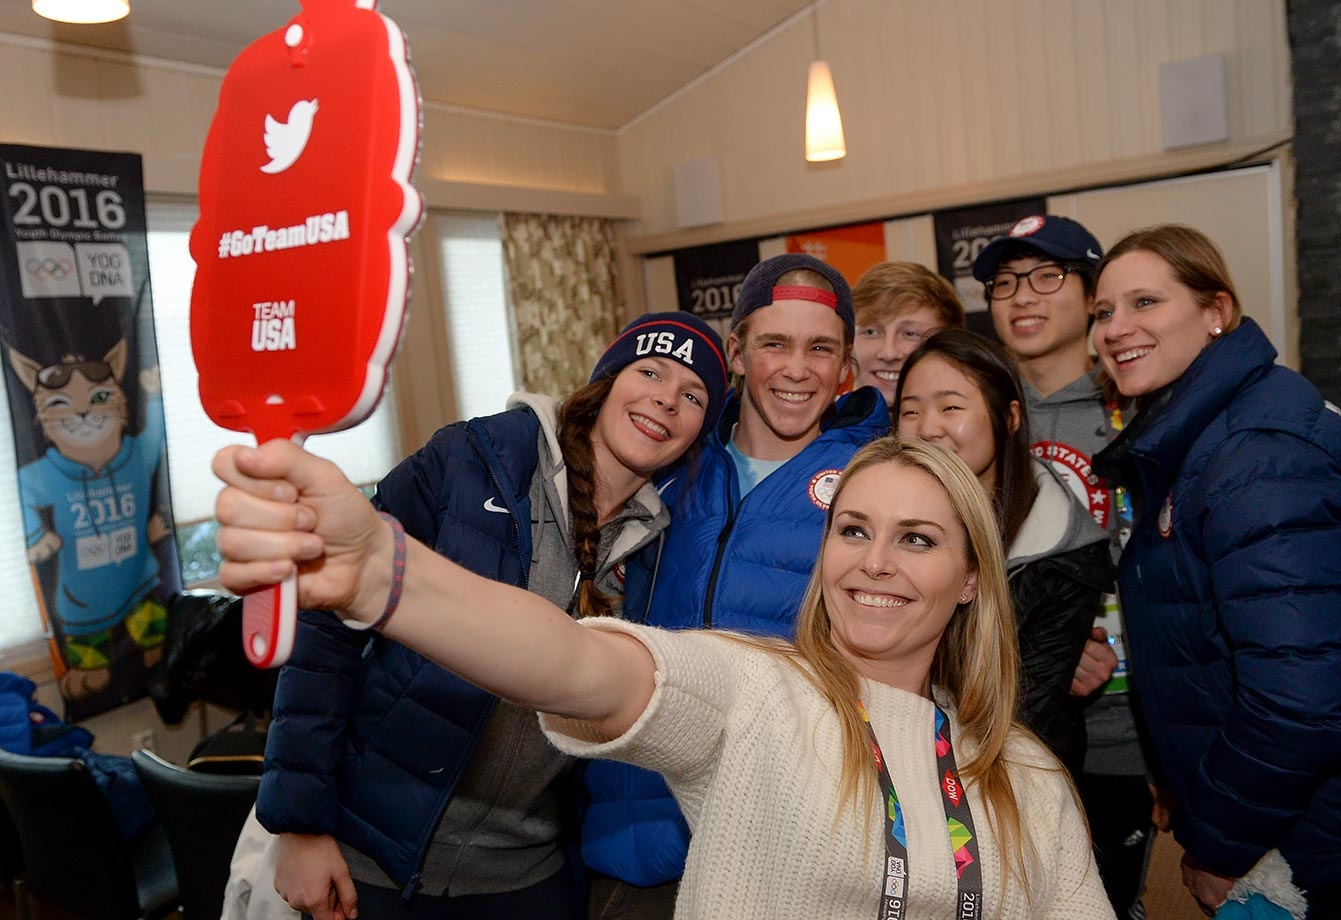 Olympic Champion in Alpine Skiing Lindsey Vonn (USA) poses for a selfie with Keely Cashman (USA), River Radamus (USA), Austin Kleba (USA), April Shin (USA), Aaron Heo (USA) and Chair of the Coordination Commission Angela Ruggiero at the Youth Olympic Village on Feb. 15, 2016 during the Winter Youth Olympic Games in Lillehammer, Norway.